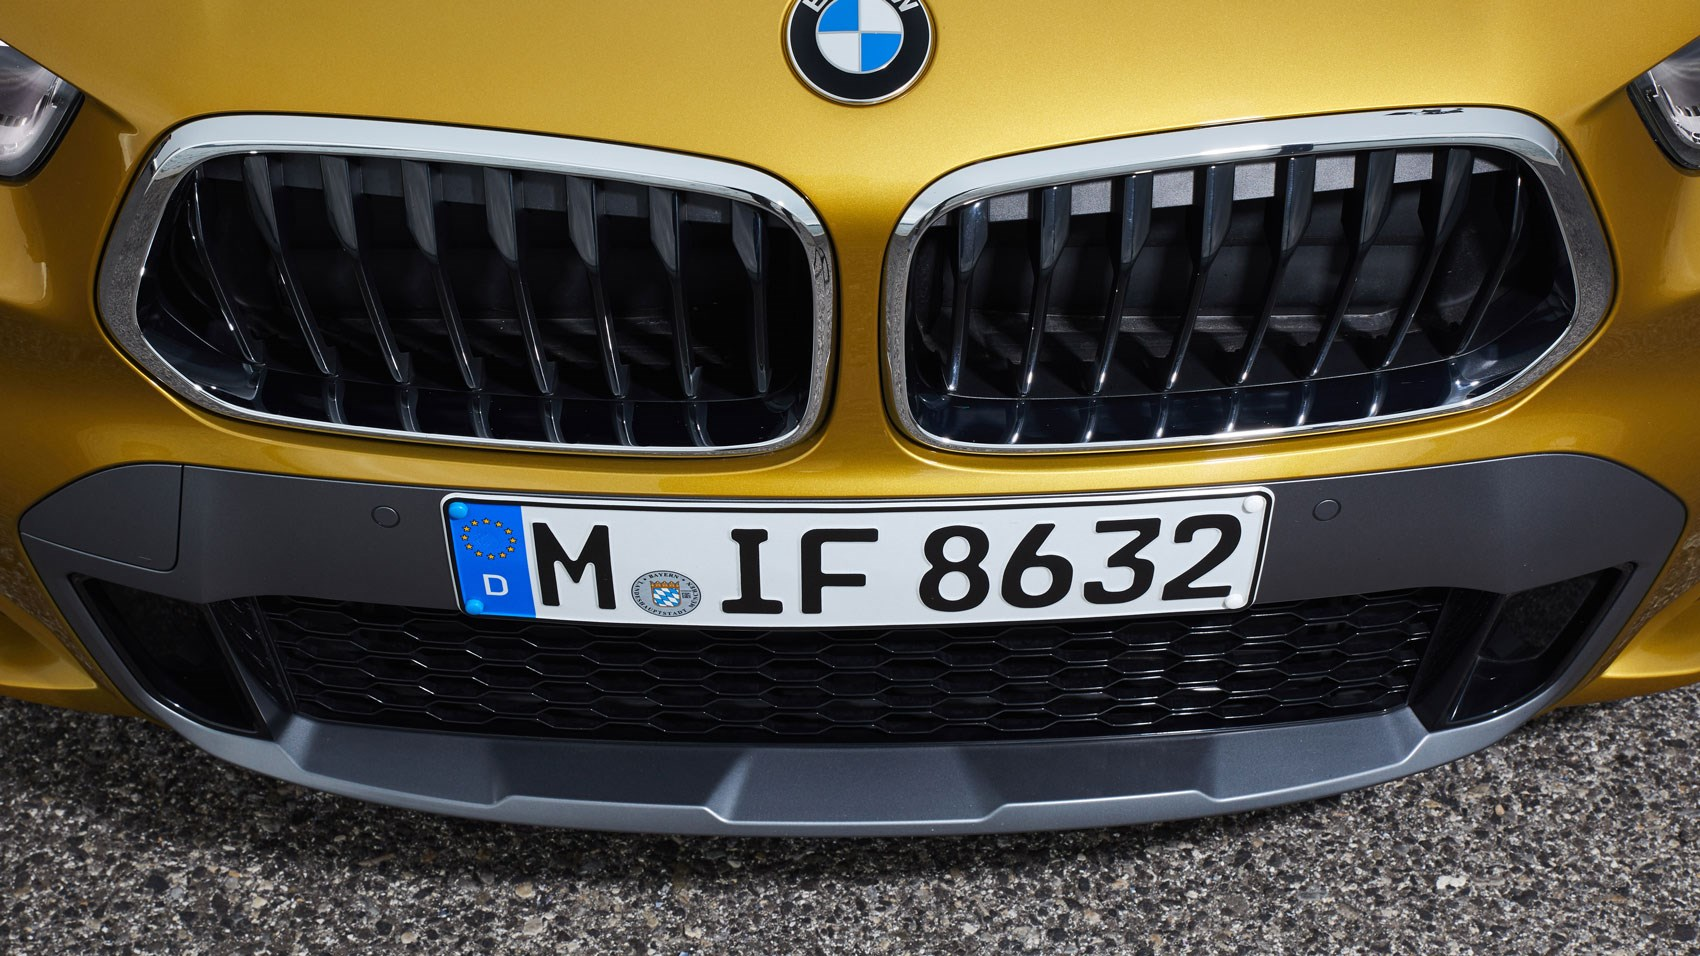 BMW X2 front detail